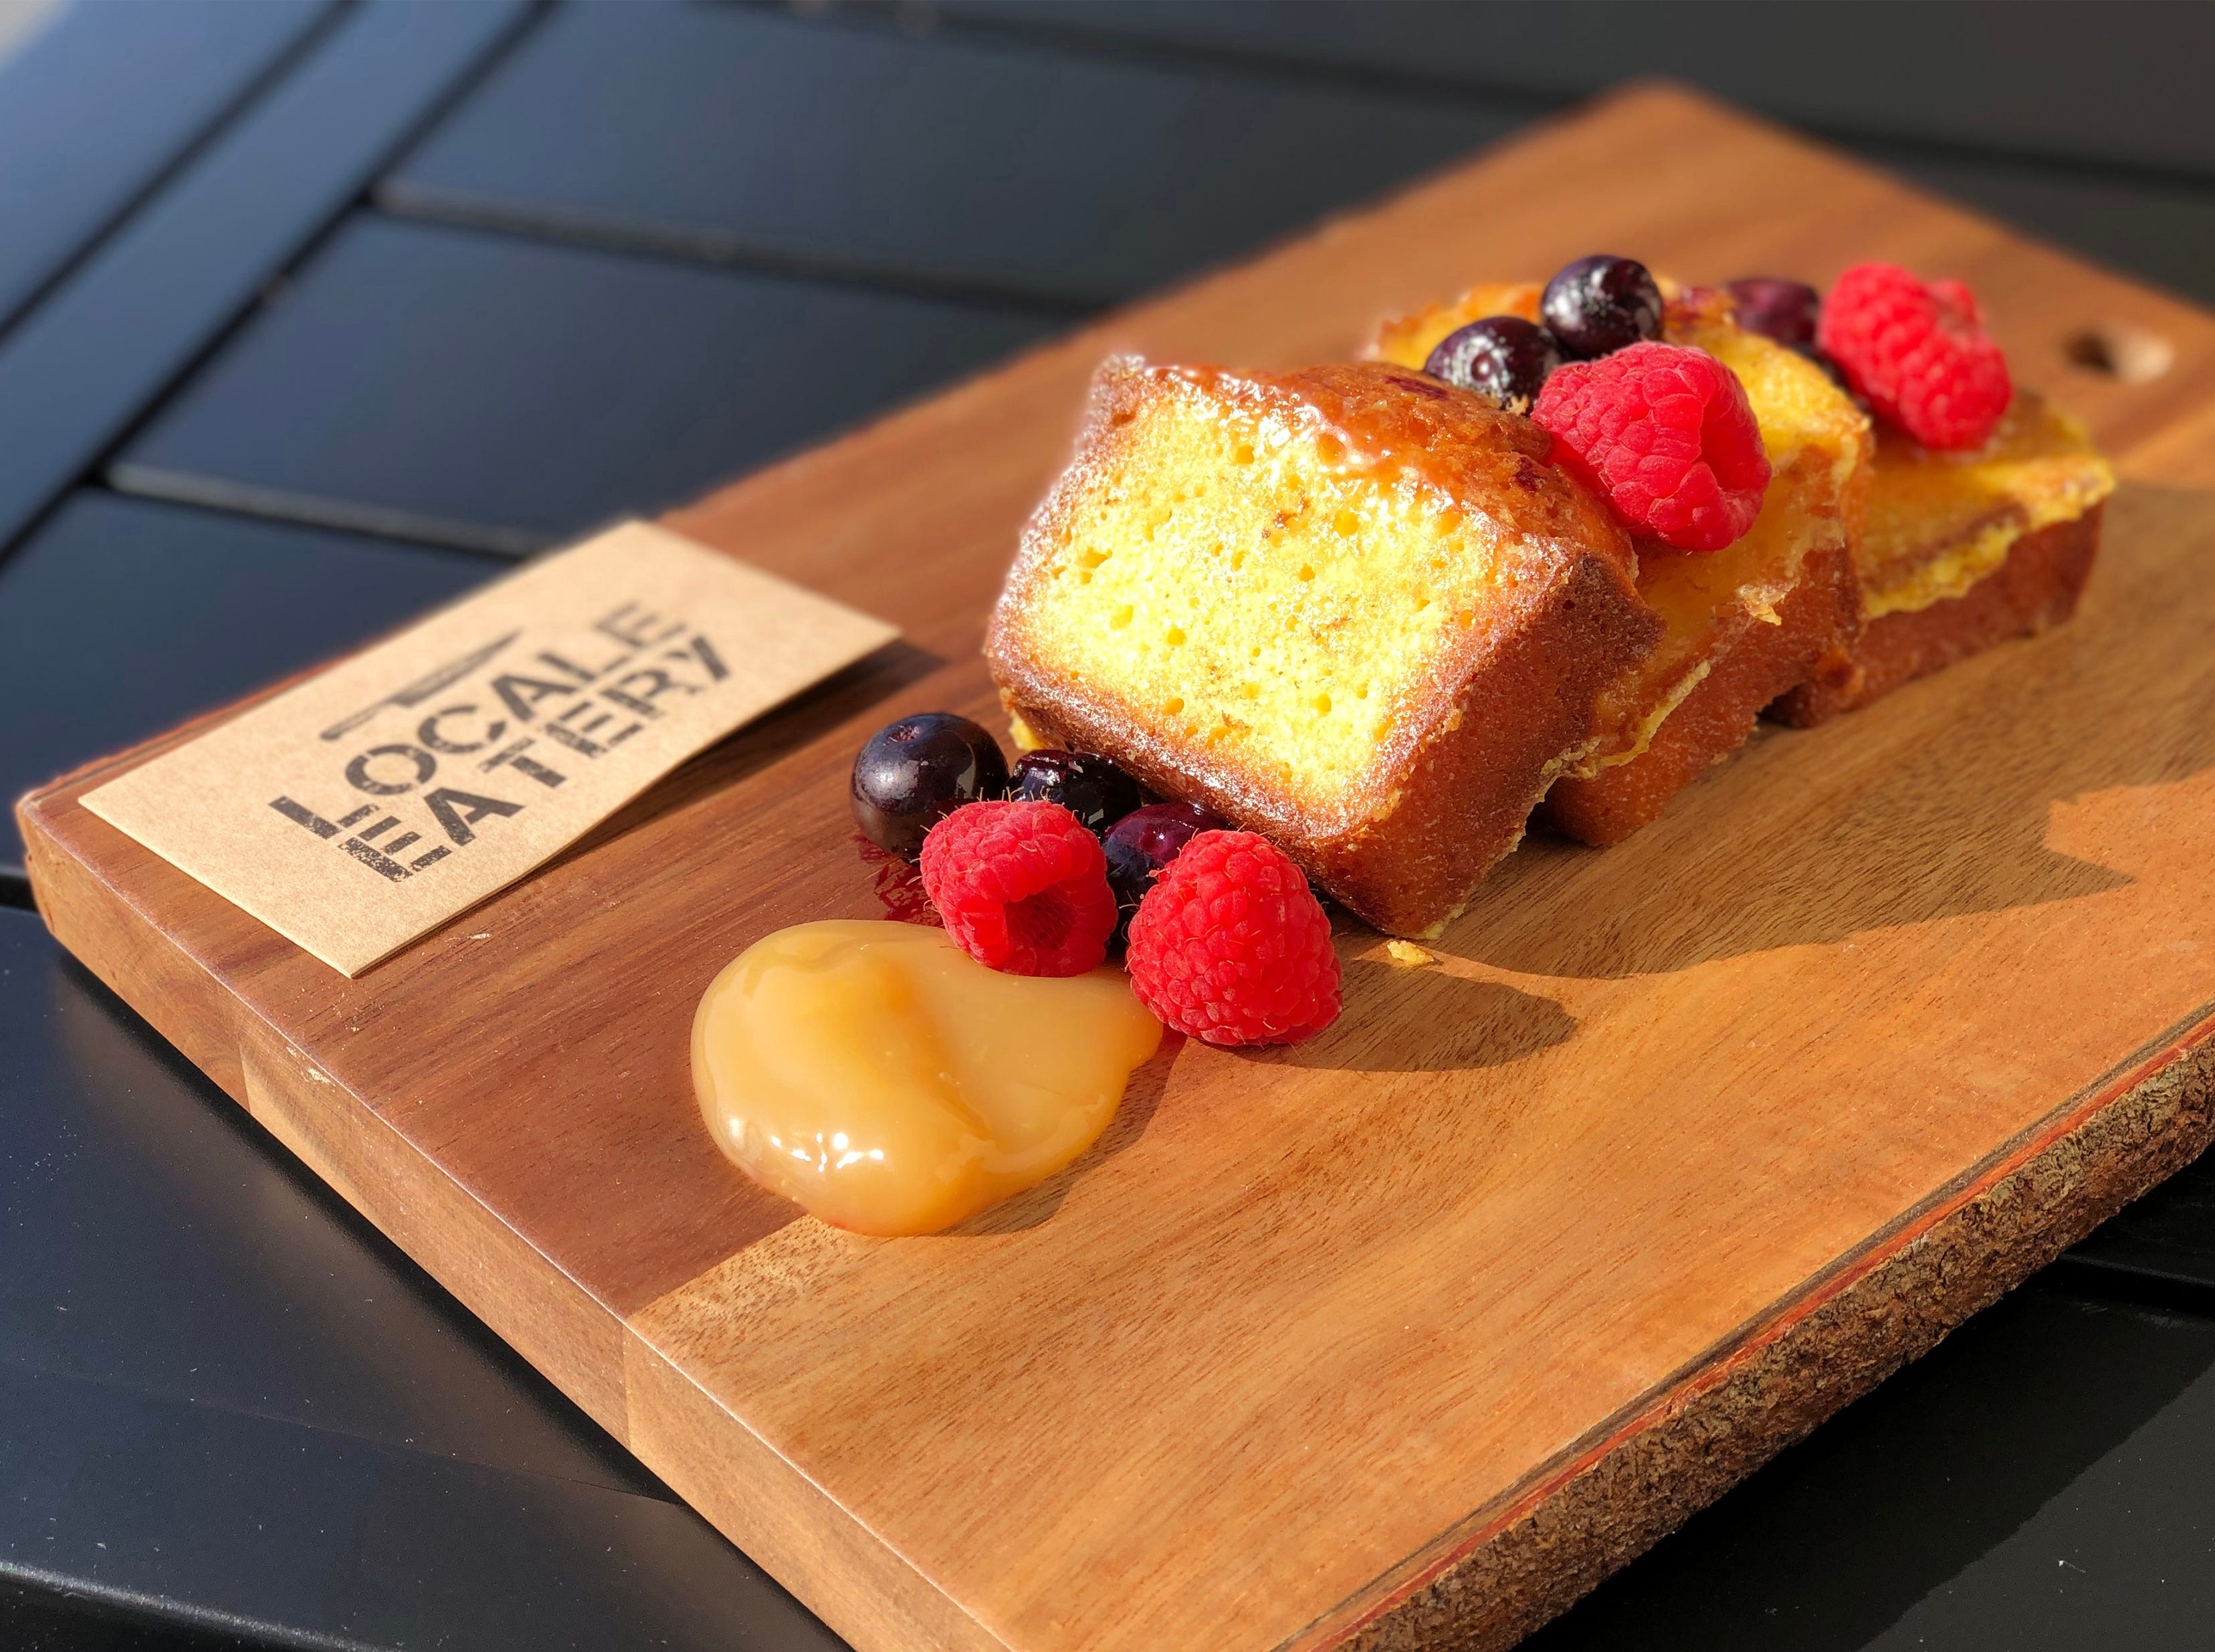 Eatery French Toast features house-made pound cake with lemon curd and berries at Locale Eatery in North Naples.